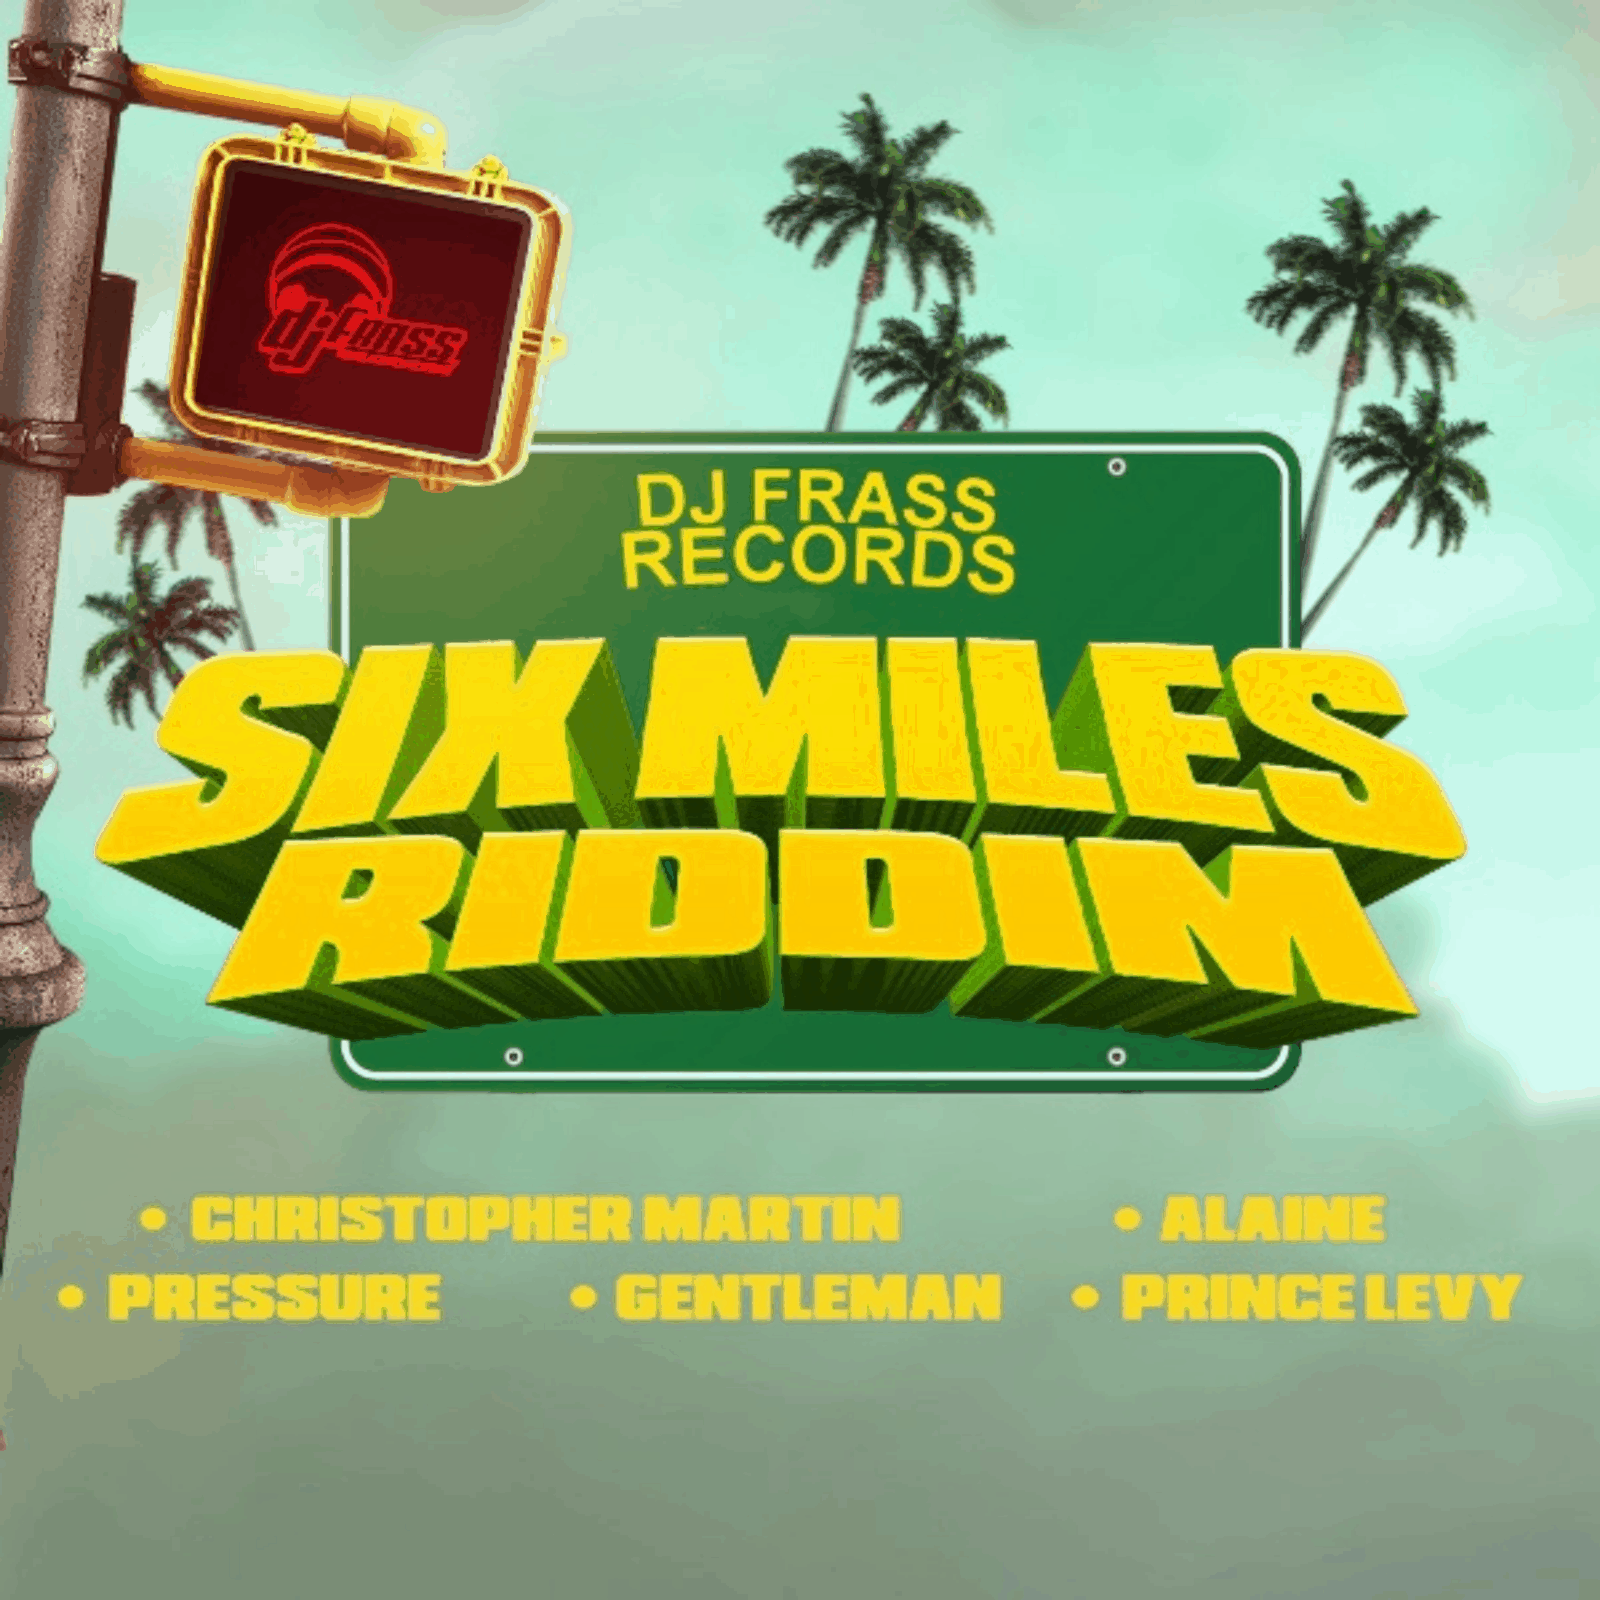 Six Miles Riddim - DJ Frass Records